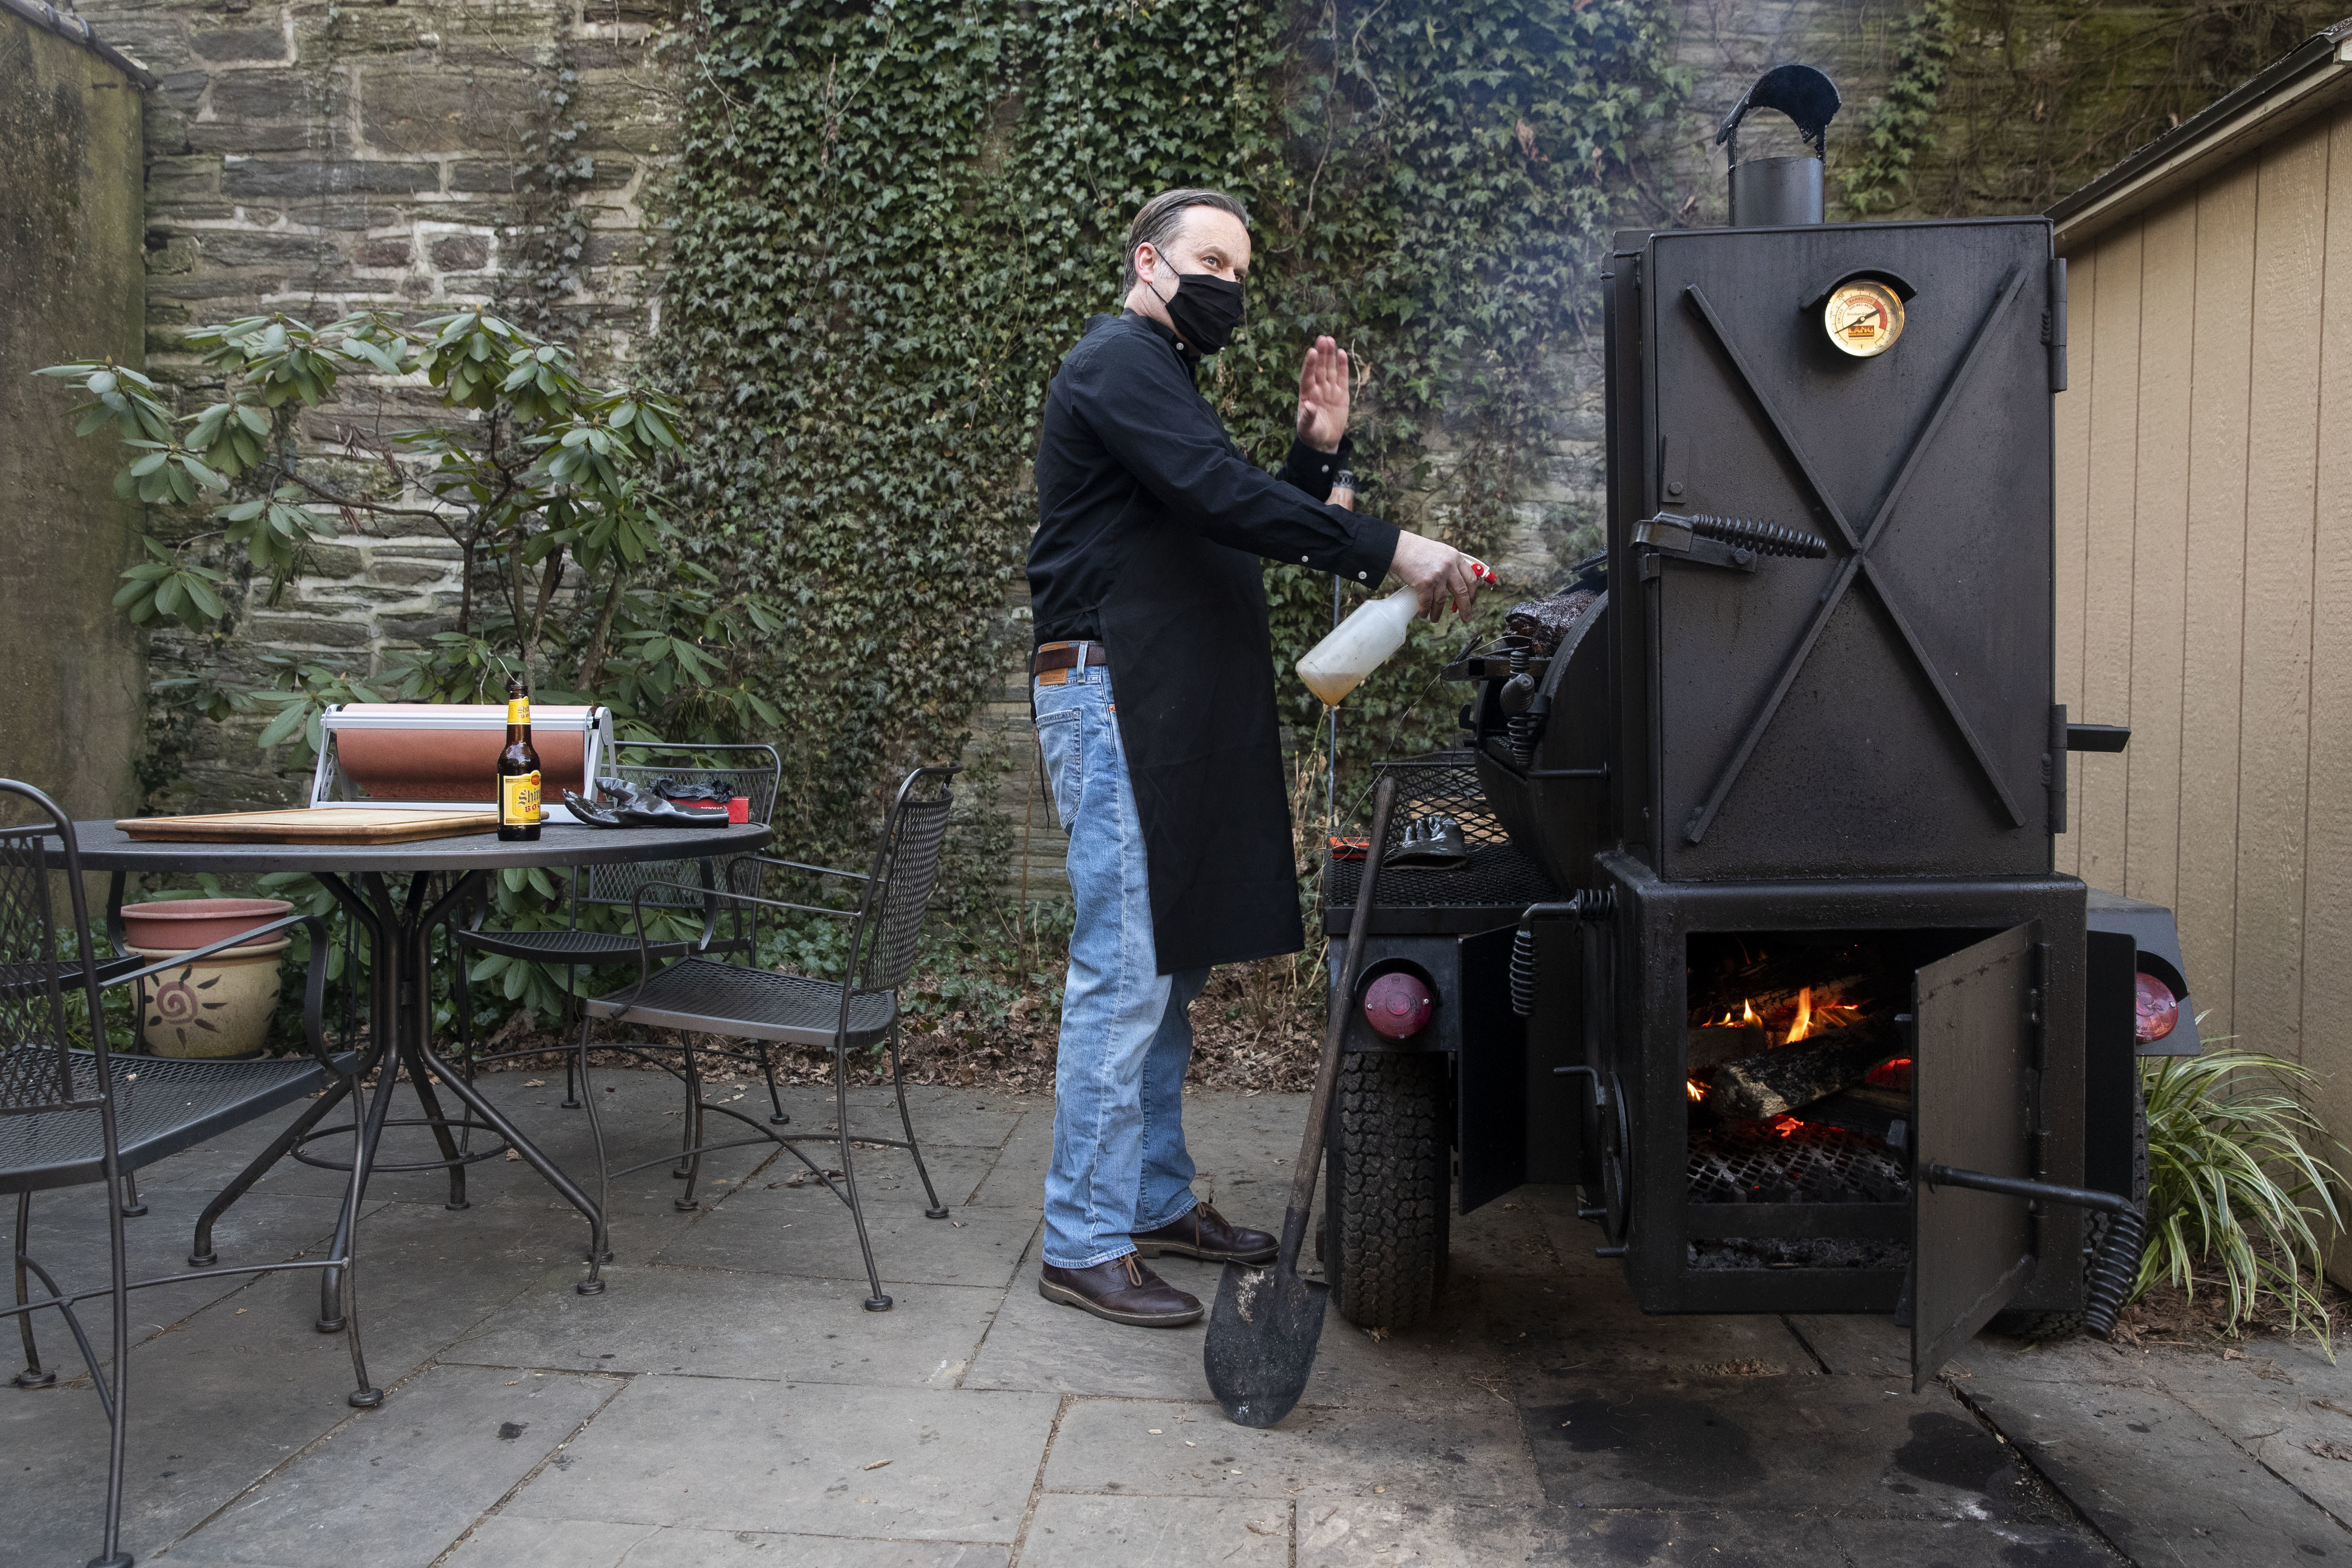 Scott Hanson sprays vinegar on the smoking meats in his backyard in the Chestnut Hill neighborhood of Philadelphia, Pa. on Sunday, March 14, 2021. Scott Hanson, a history and social justice professor, is launching a weekly pop-up collaboration with Cadence on March 21.